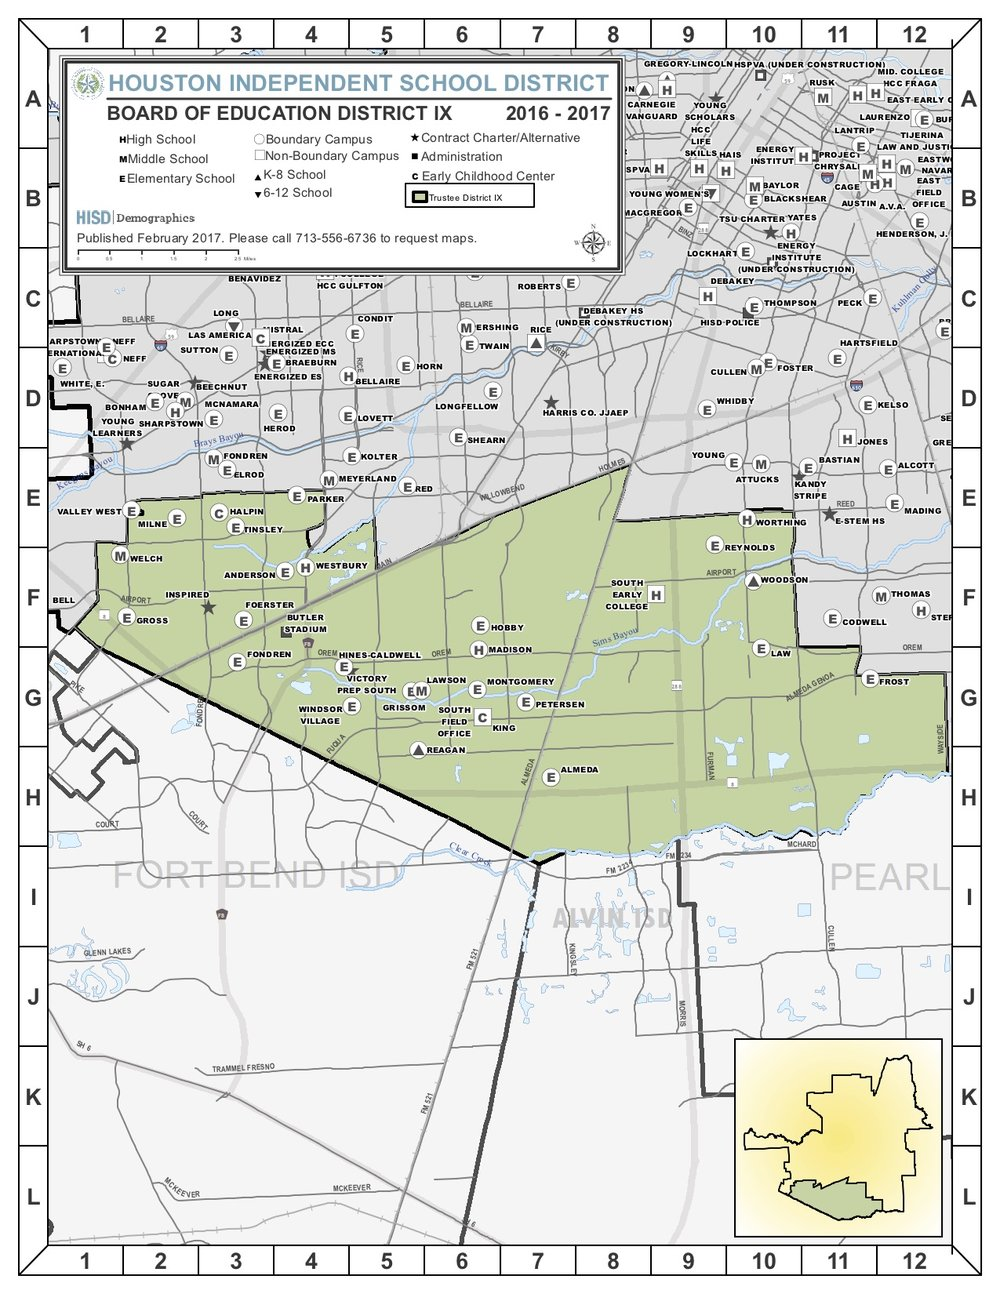 District 9 Boundary Map 2017.jpg